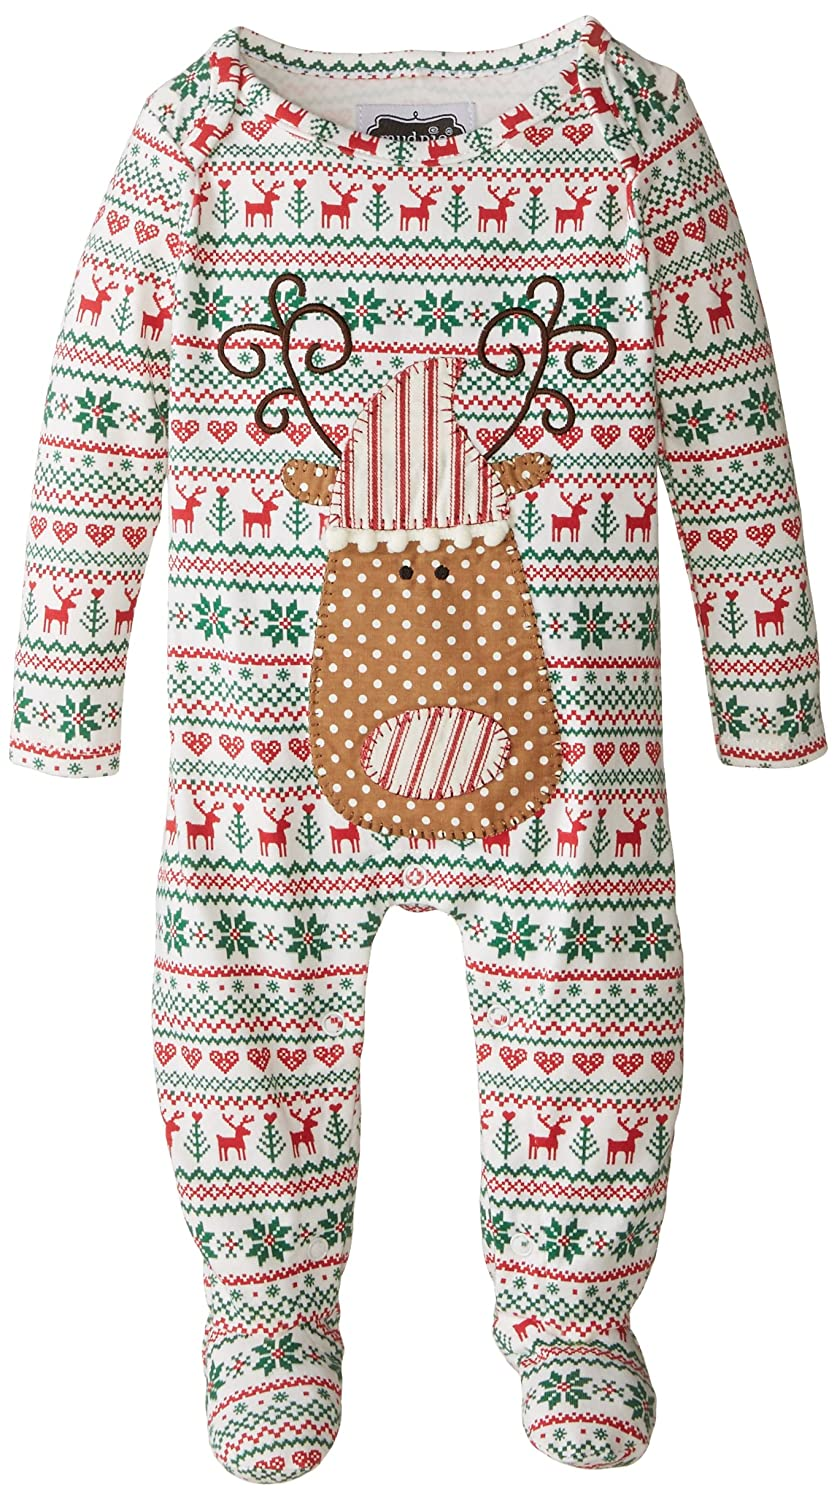 amazoncom mud pie baby boys newborn reindeer sleeper multi 9 12 months clothing